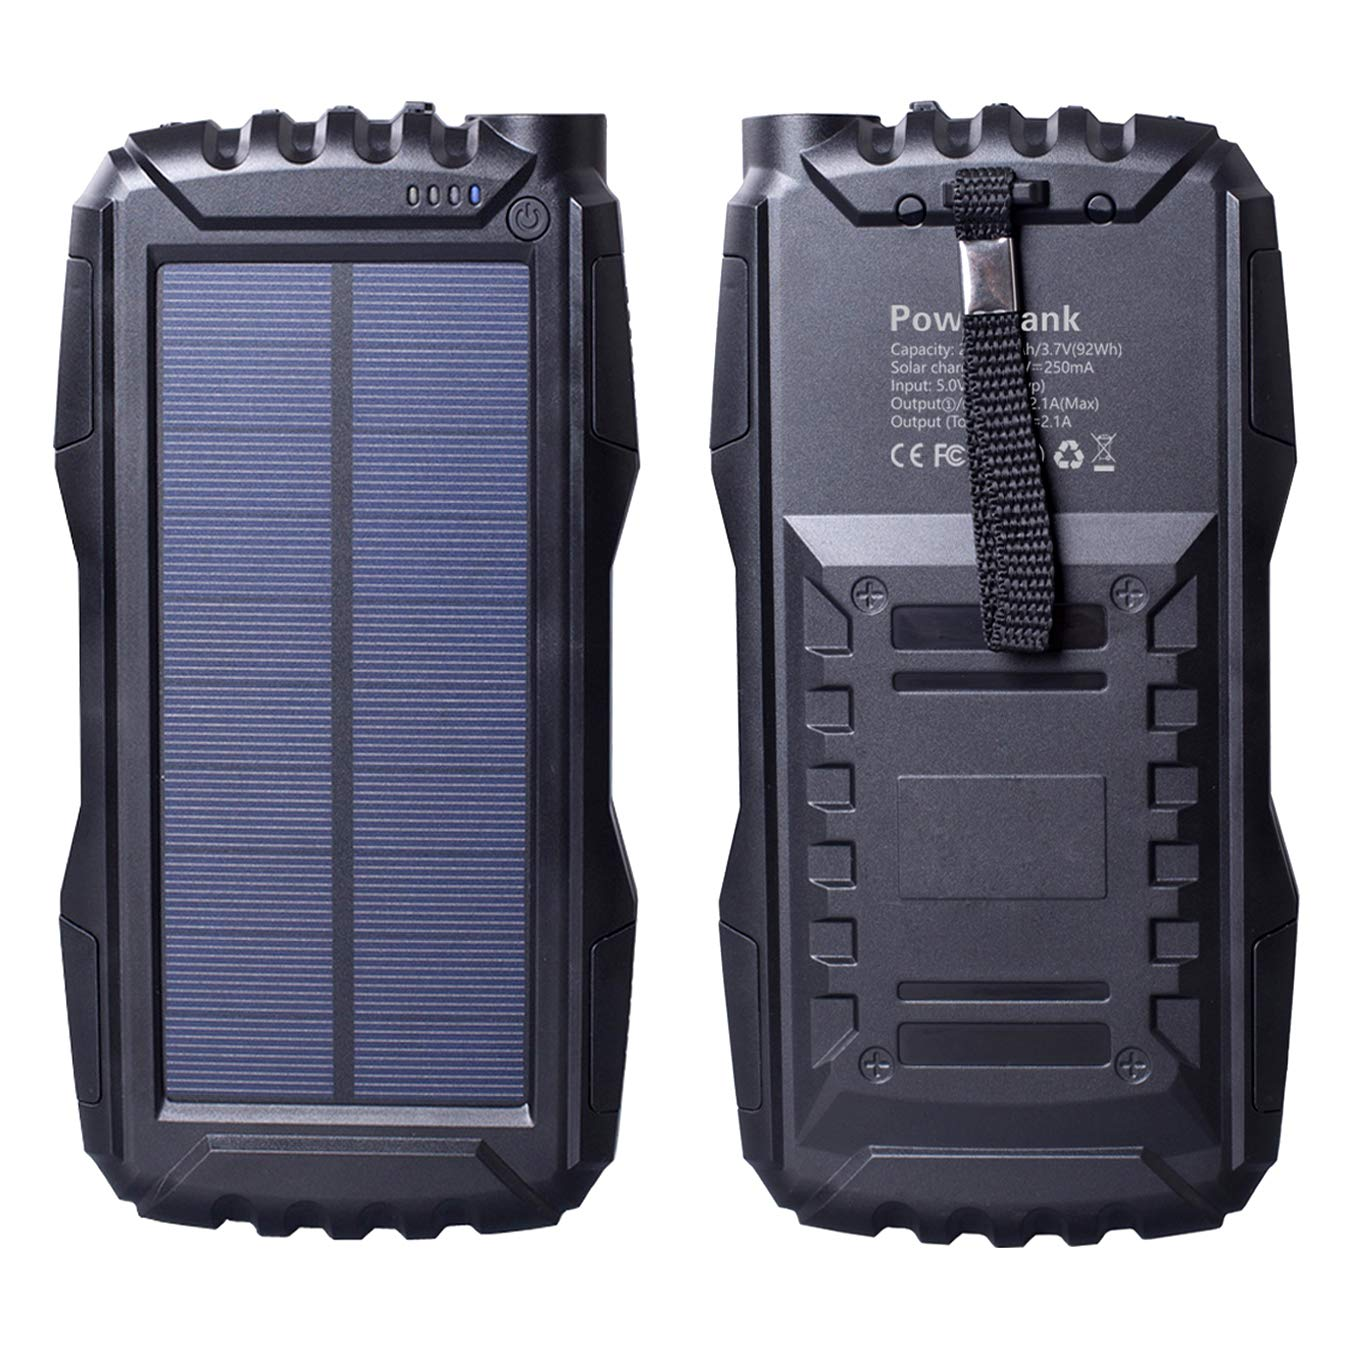 Friengood Solar Charger 25000mAh, Portable Solar Power Bank with Dual USB Port, Outdoor Solar Phone Battery Charger with LED Flashlight for iPhone, iPad, Android Cellphones and More (Black) by Friengood